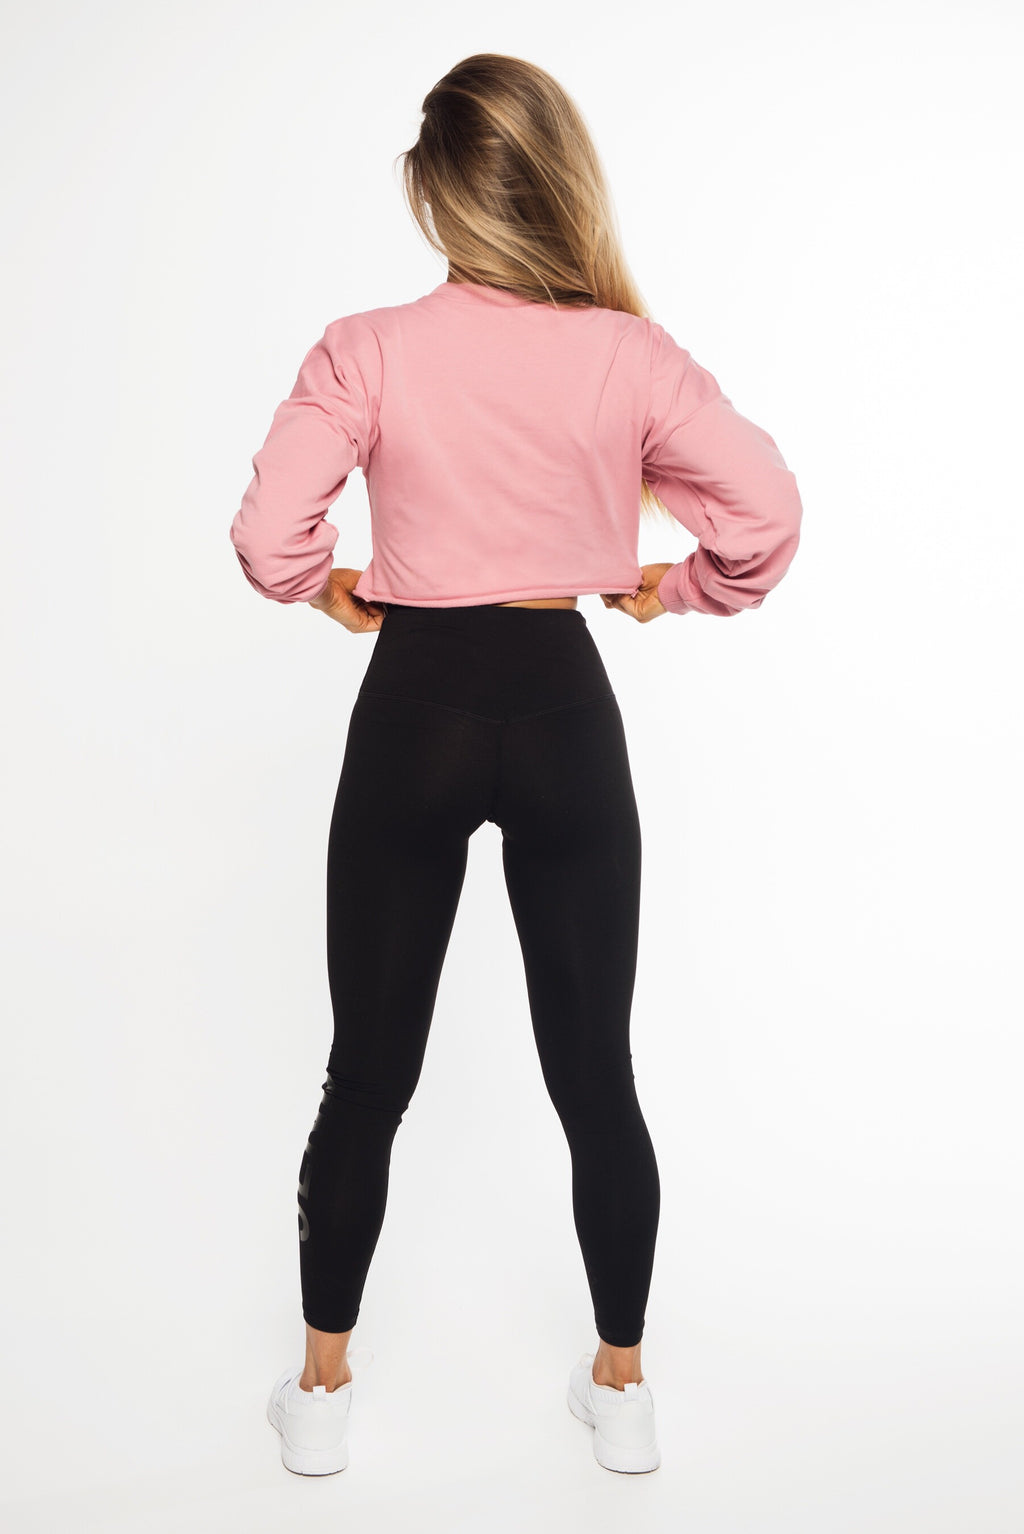 SHORTY CROP JUMPER - DUSTY PINK